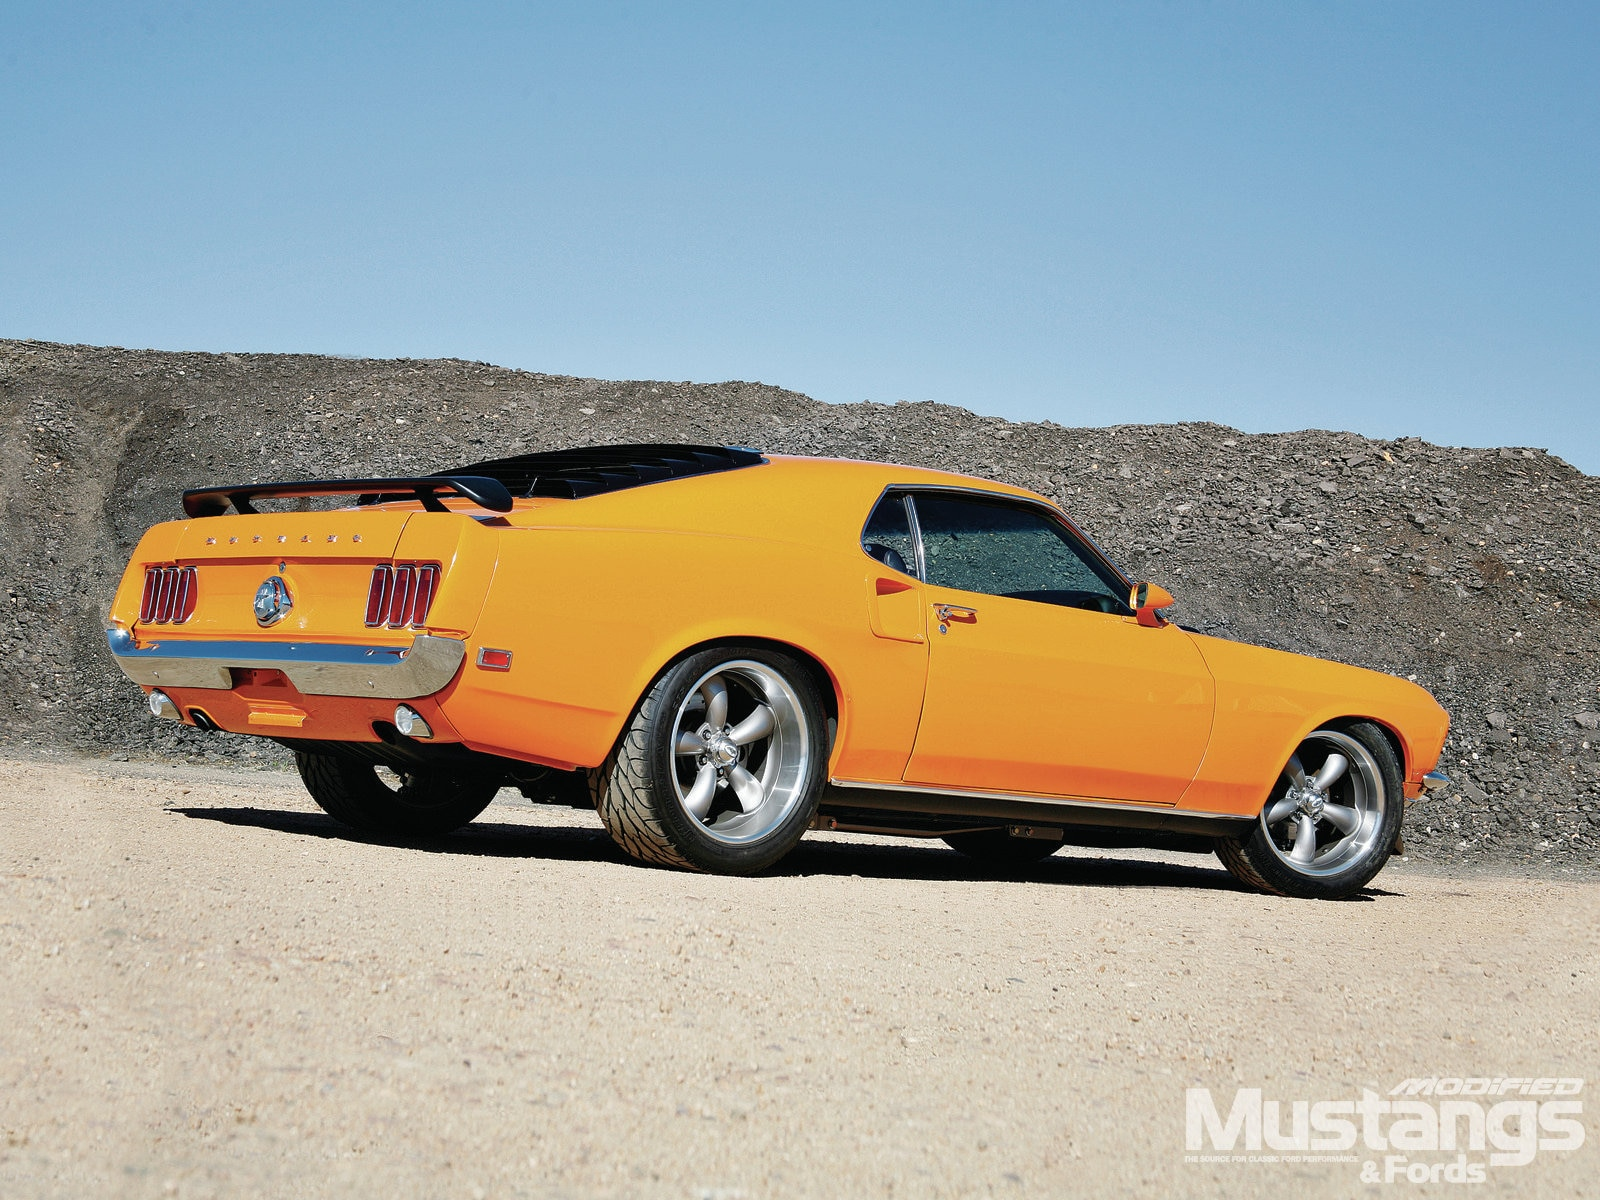 Mdmp 1206 007 1969 Mustang Mach 1 Always Grabber Orange